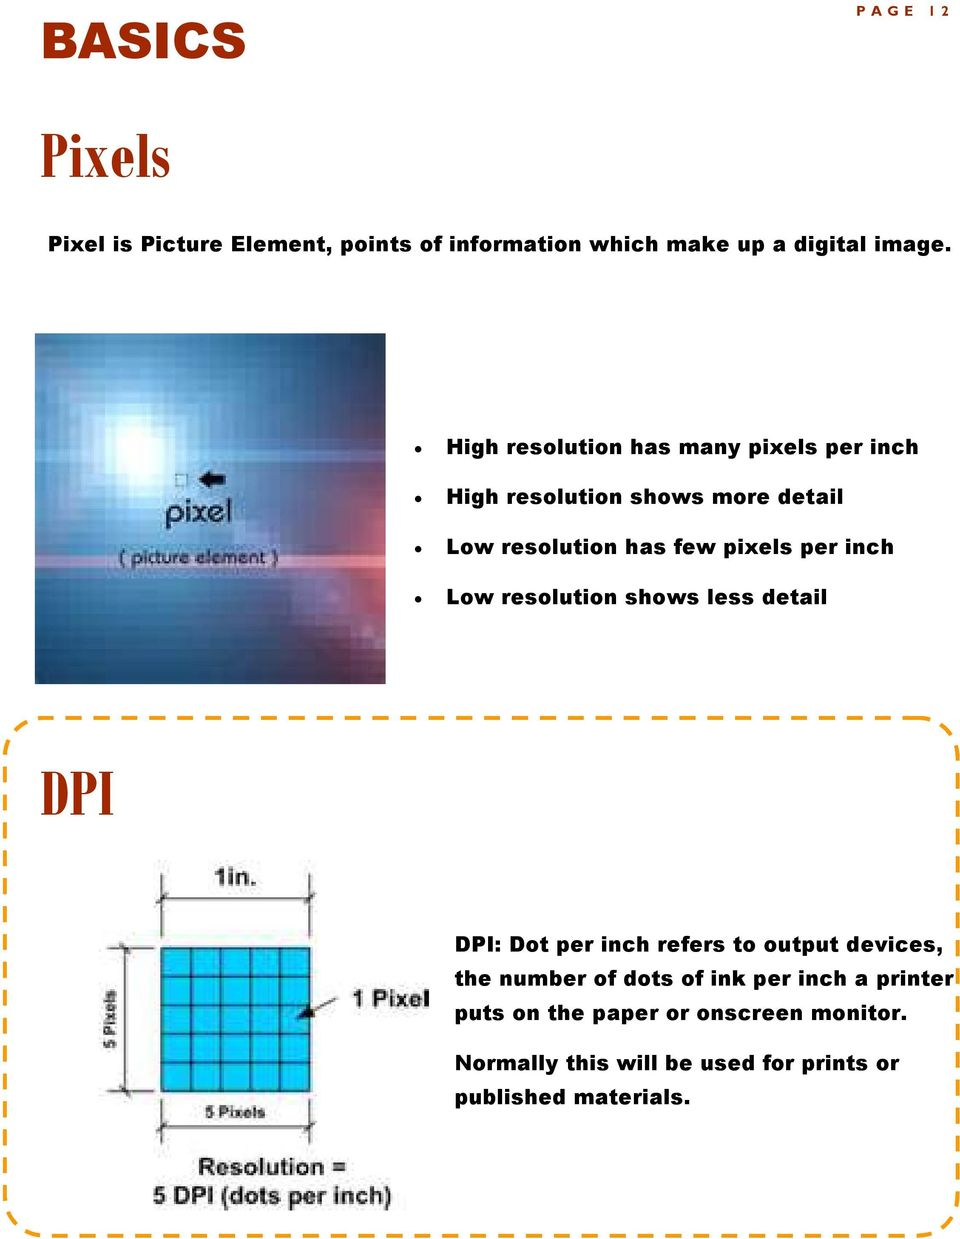 inch Low resolution shows less detail DPI DPI: Dot per inch refers to output devices, the number of dots of ink